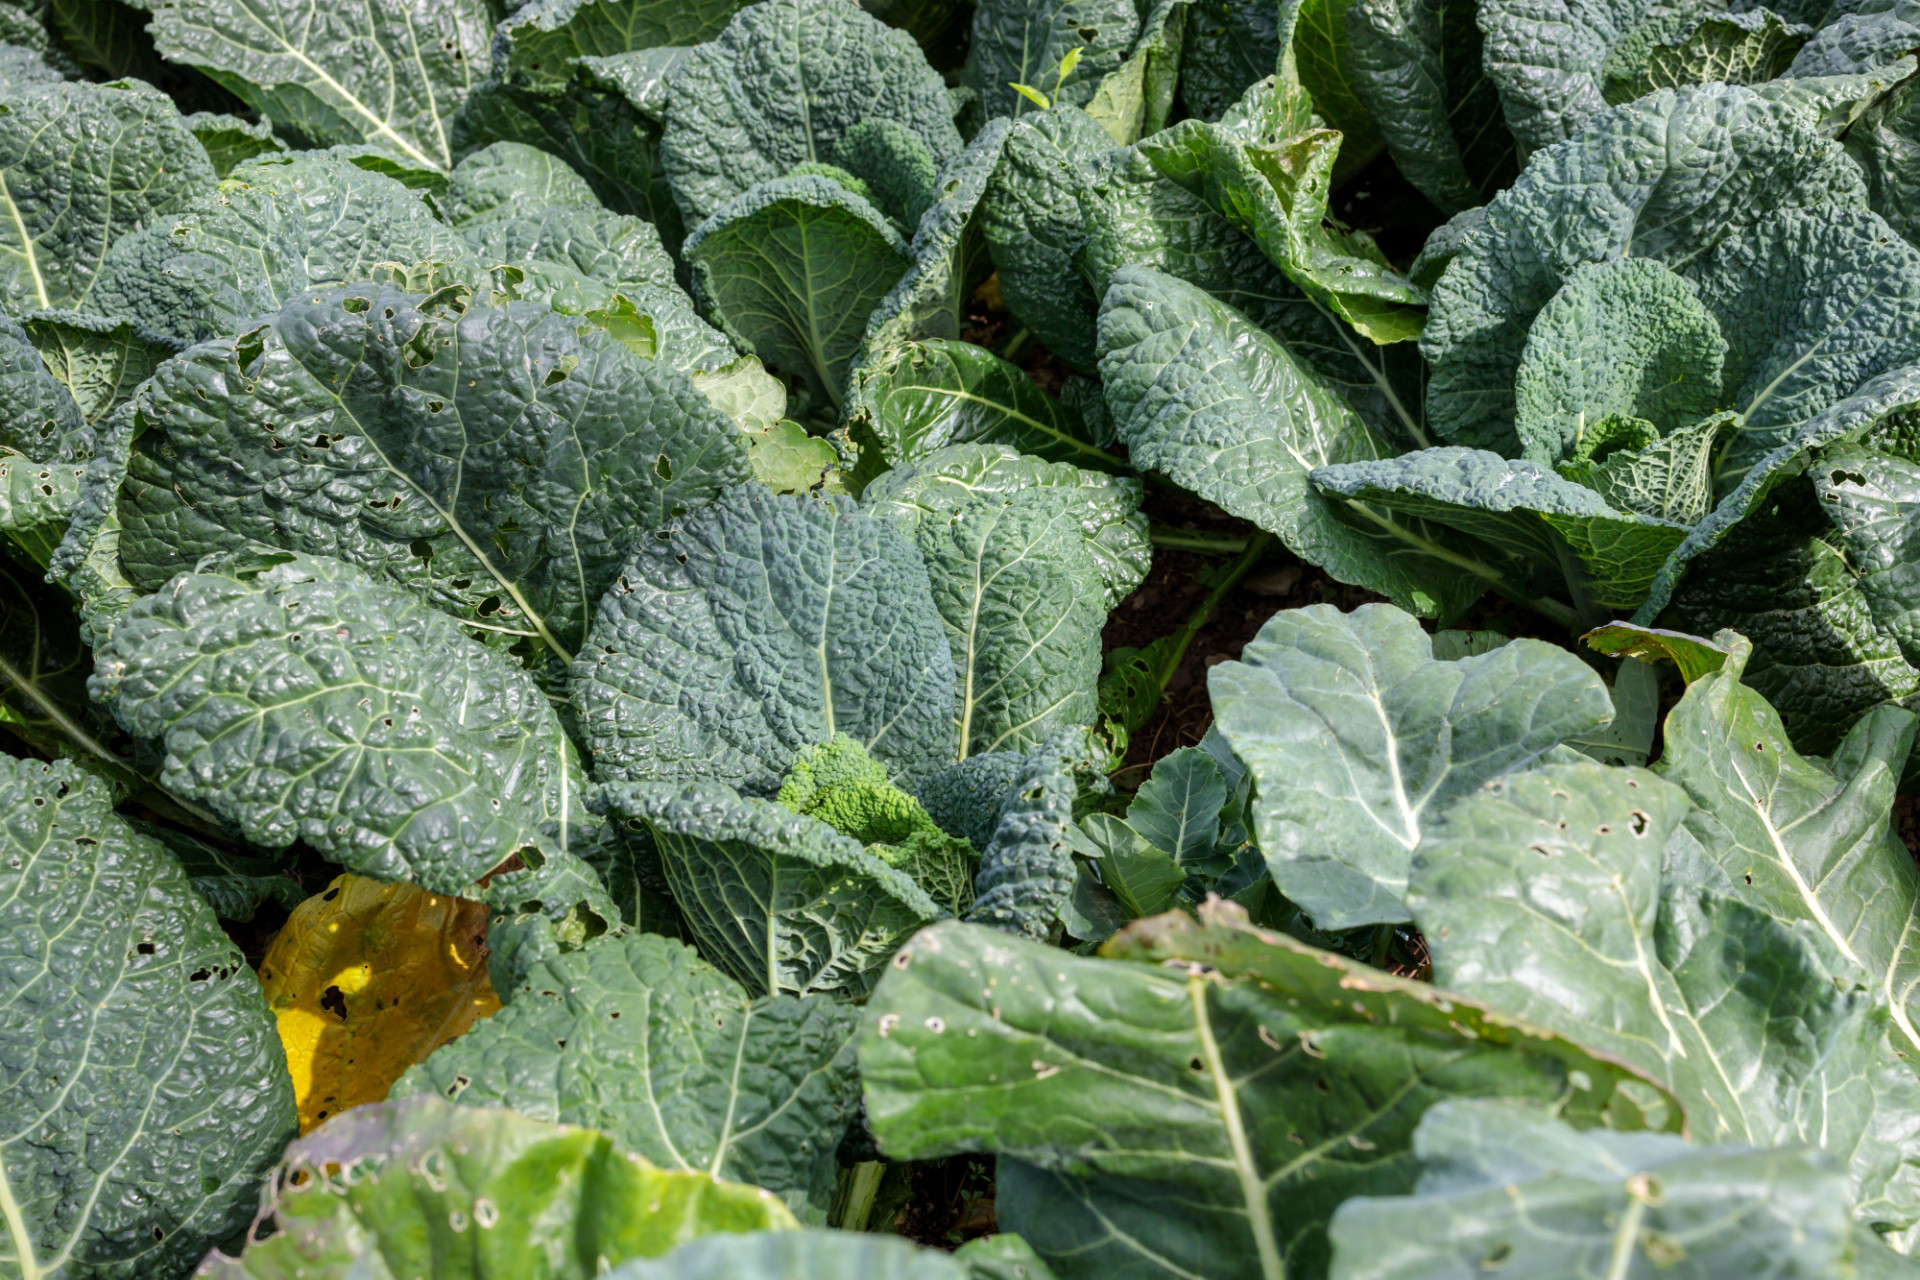 Cabbage grows in the garden